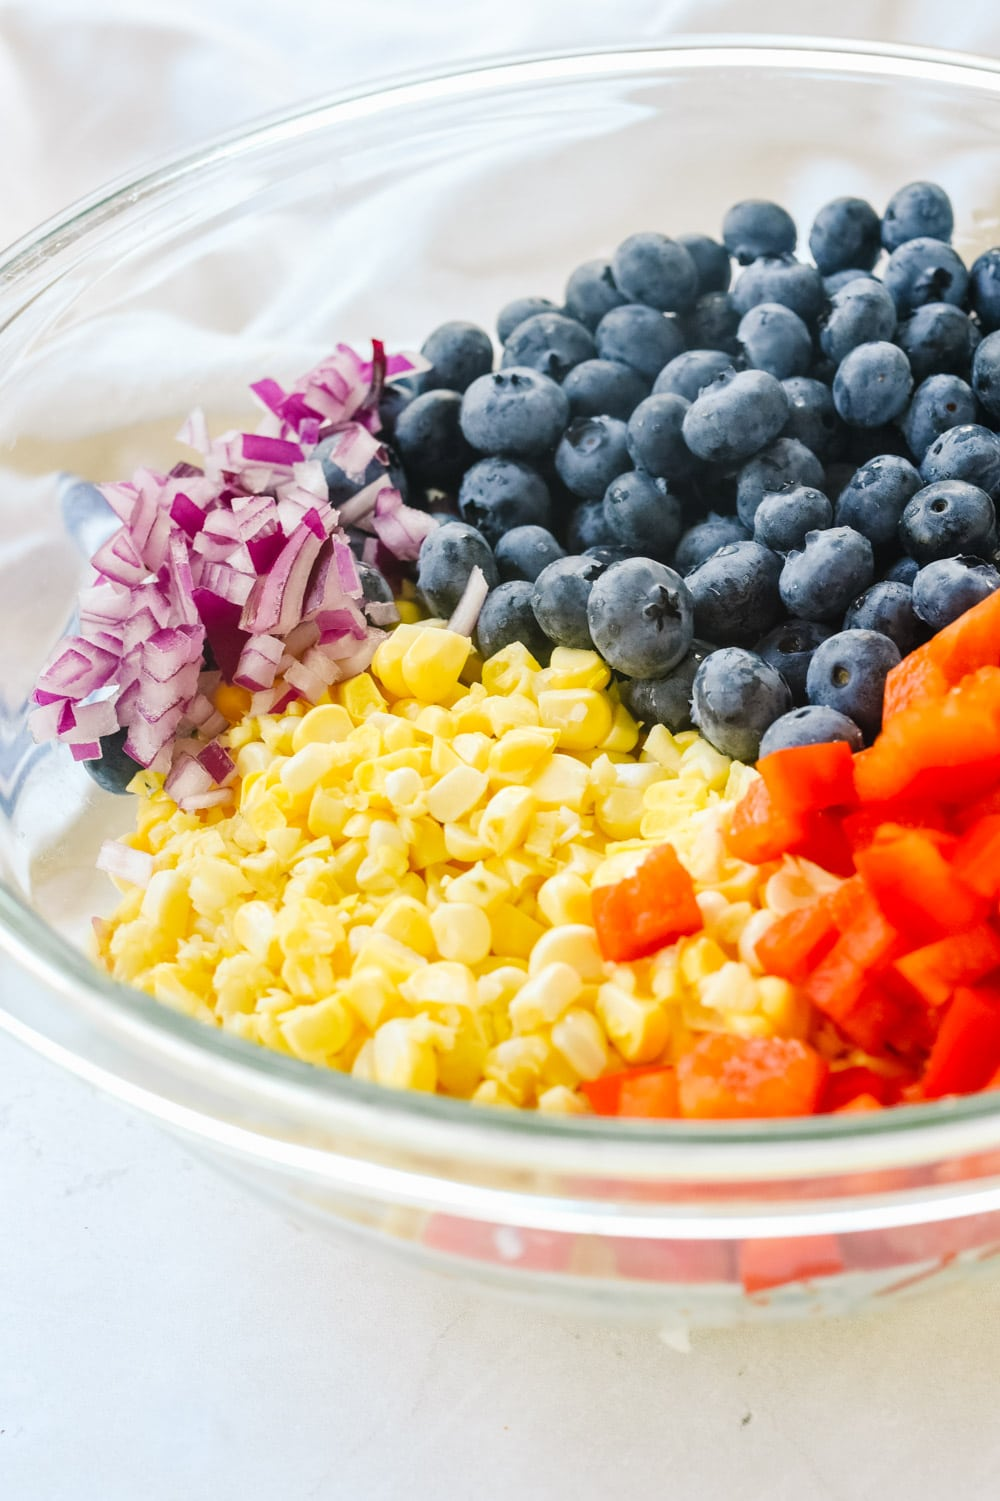 Blueberry Corn Salad Ingredients